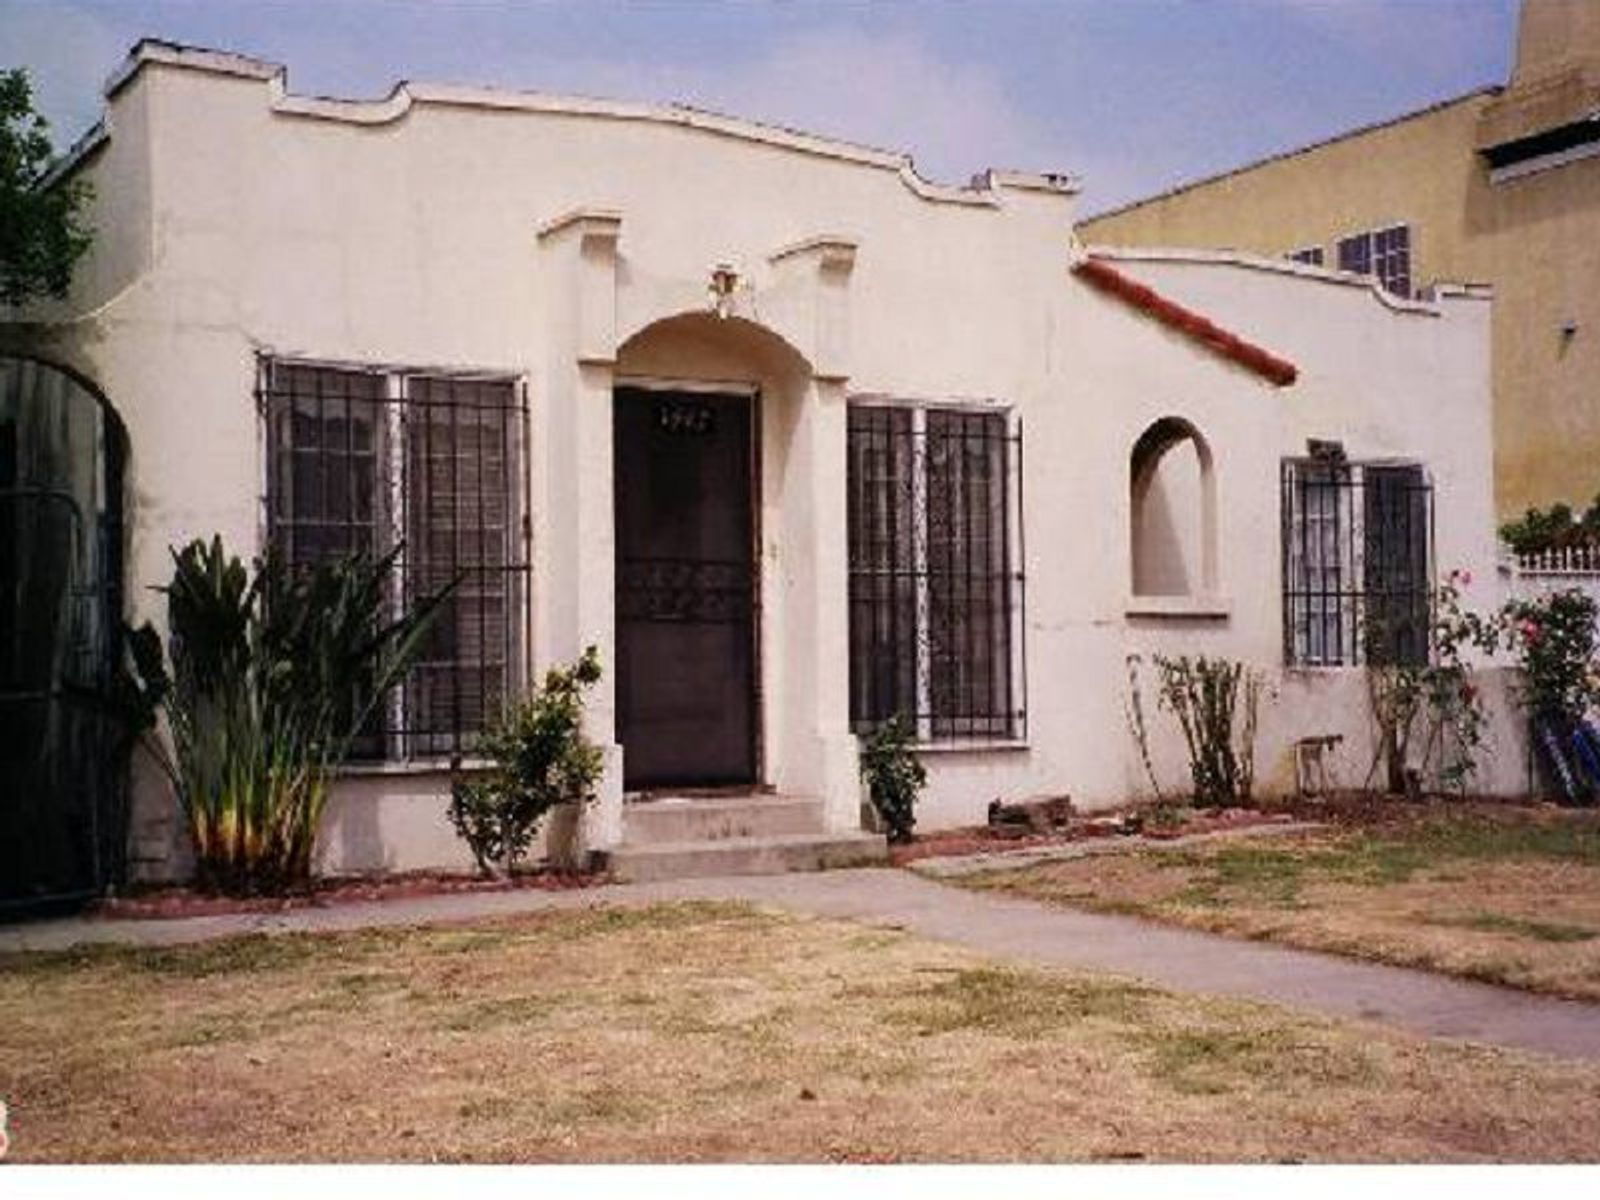 1445 South Fairfax Avenue, Los Angeles CA Multi-Family - Los Angeles Real Estate